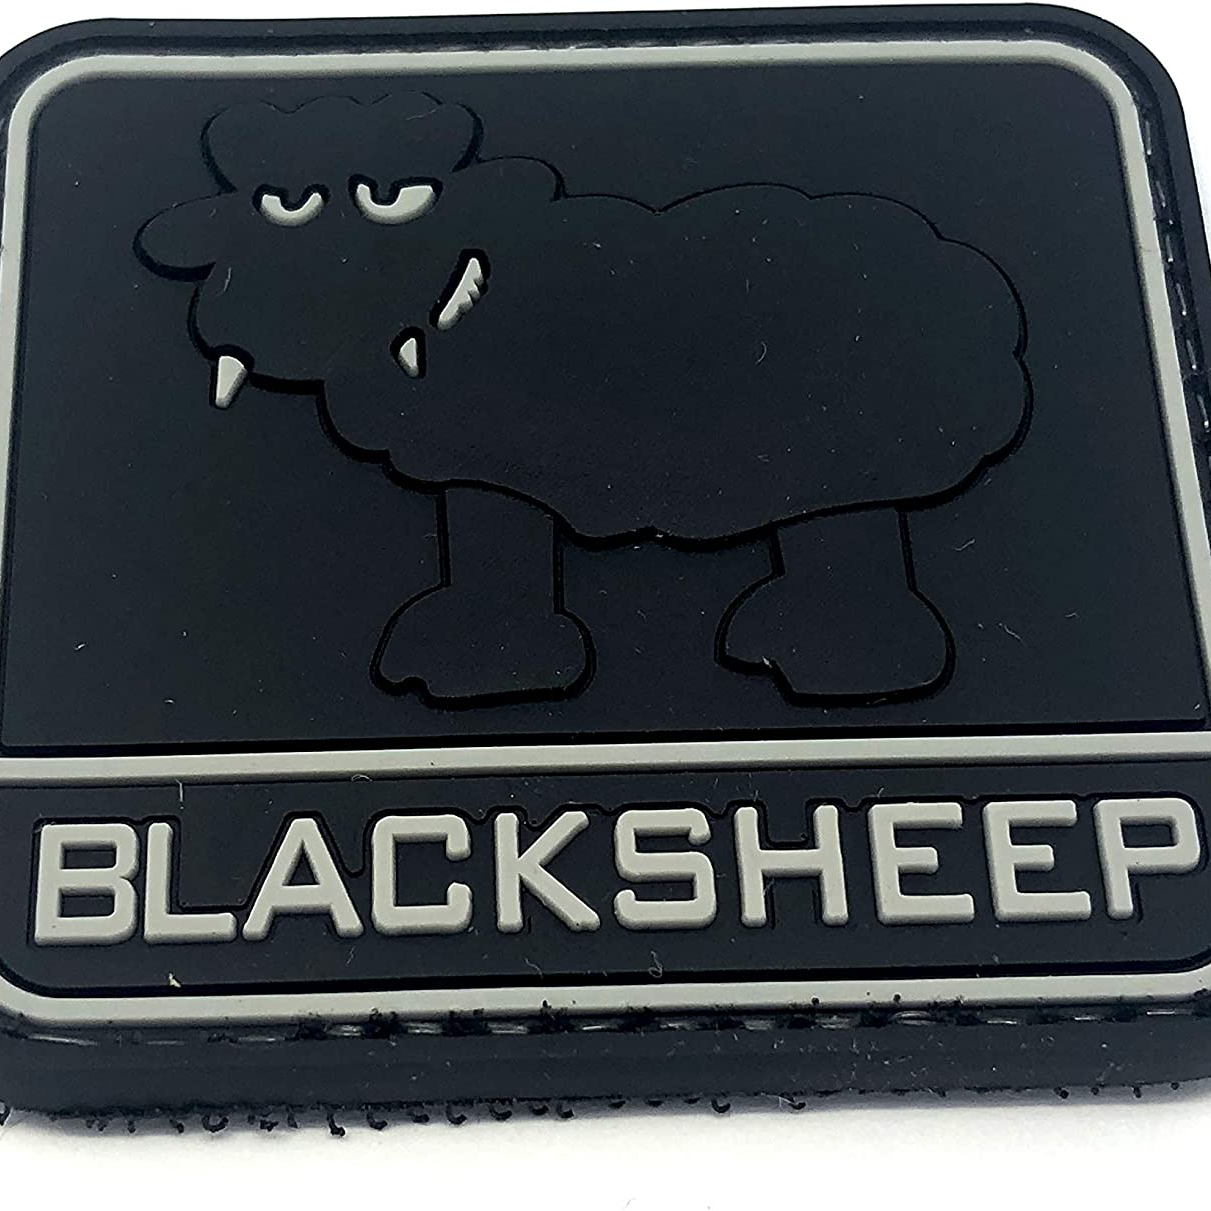 Black Sheeps logo